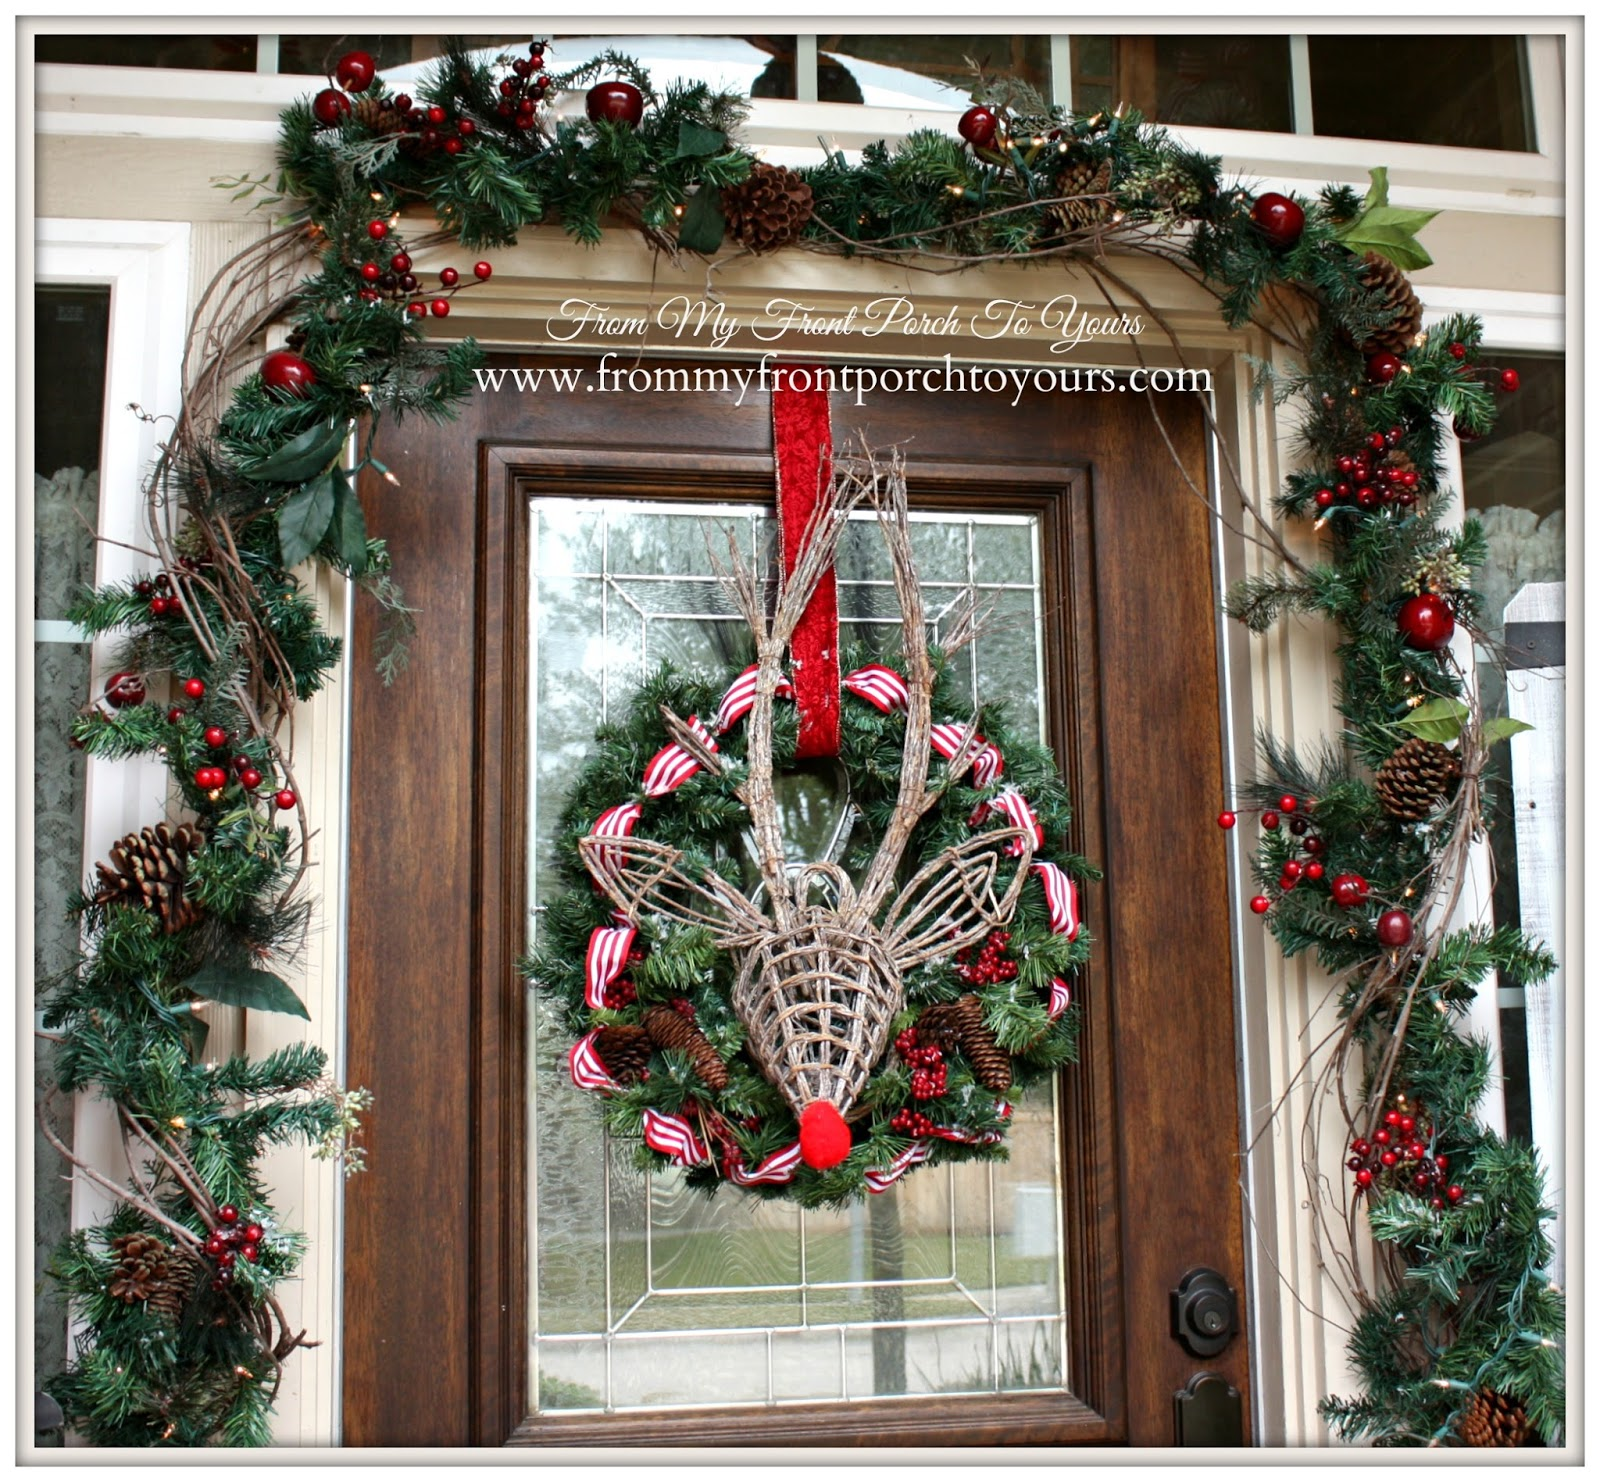 Rudolph Christmas Wreath-Simple Vintage Christmas Front Porch- From My Front Porch To Yours